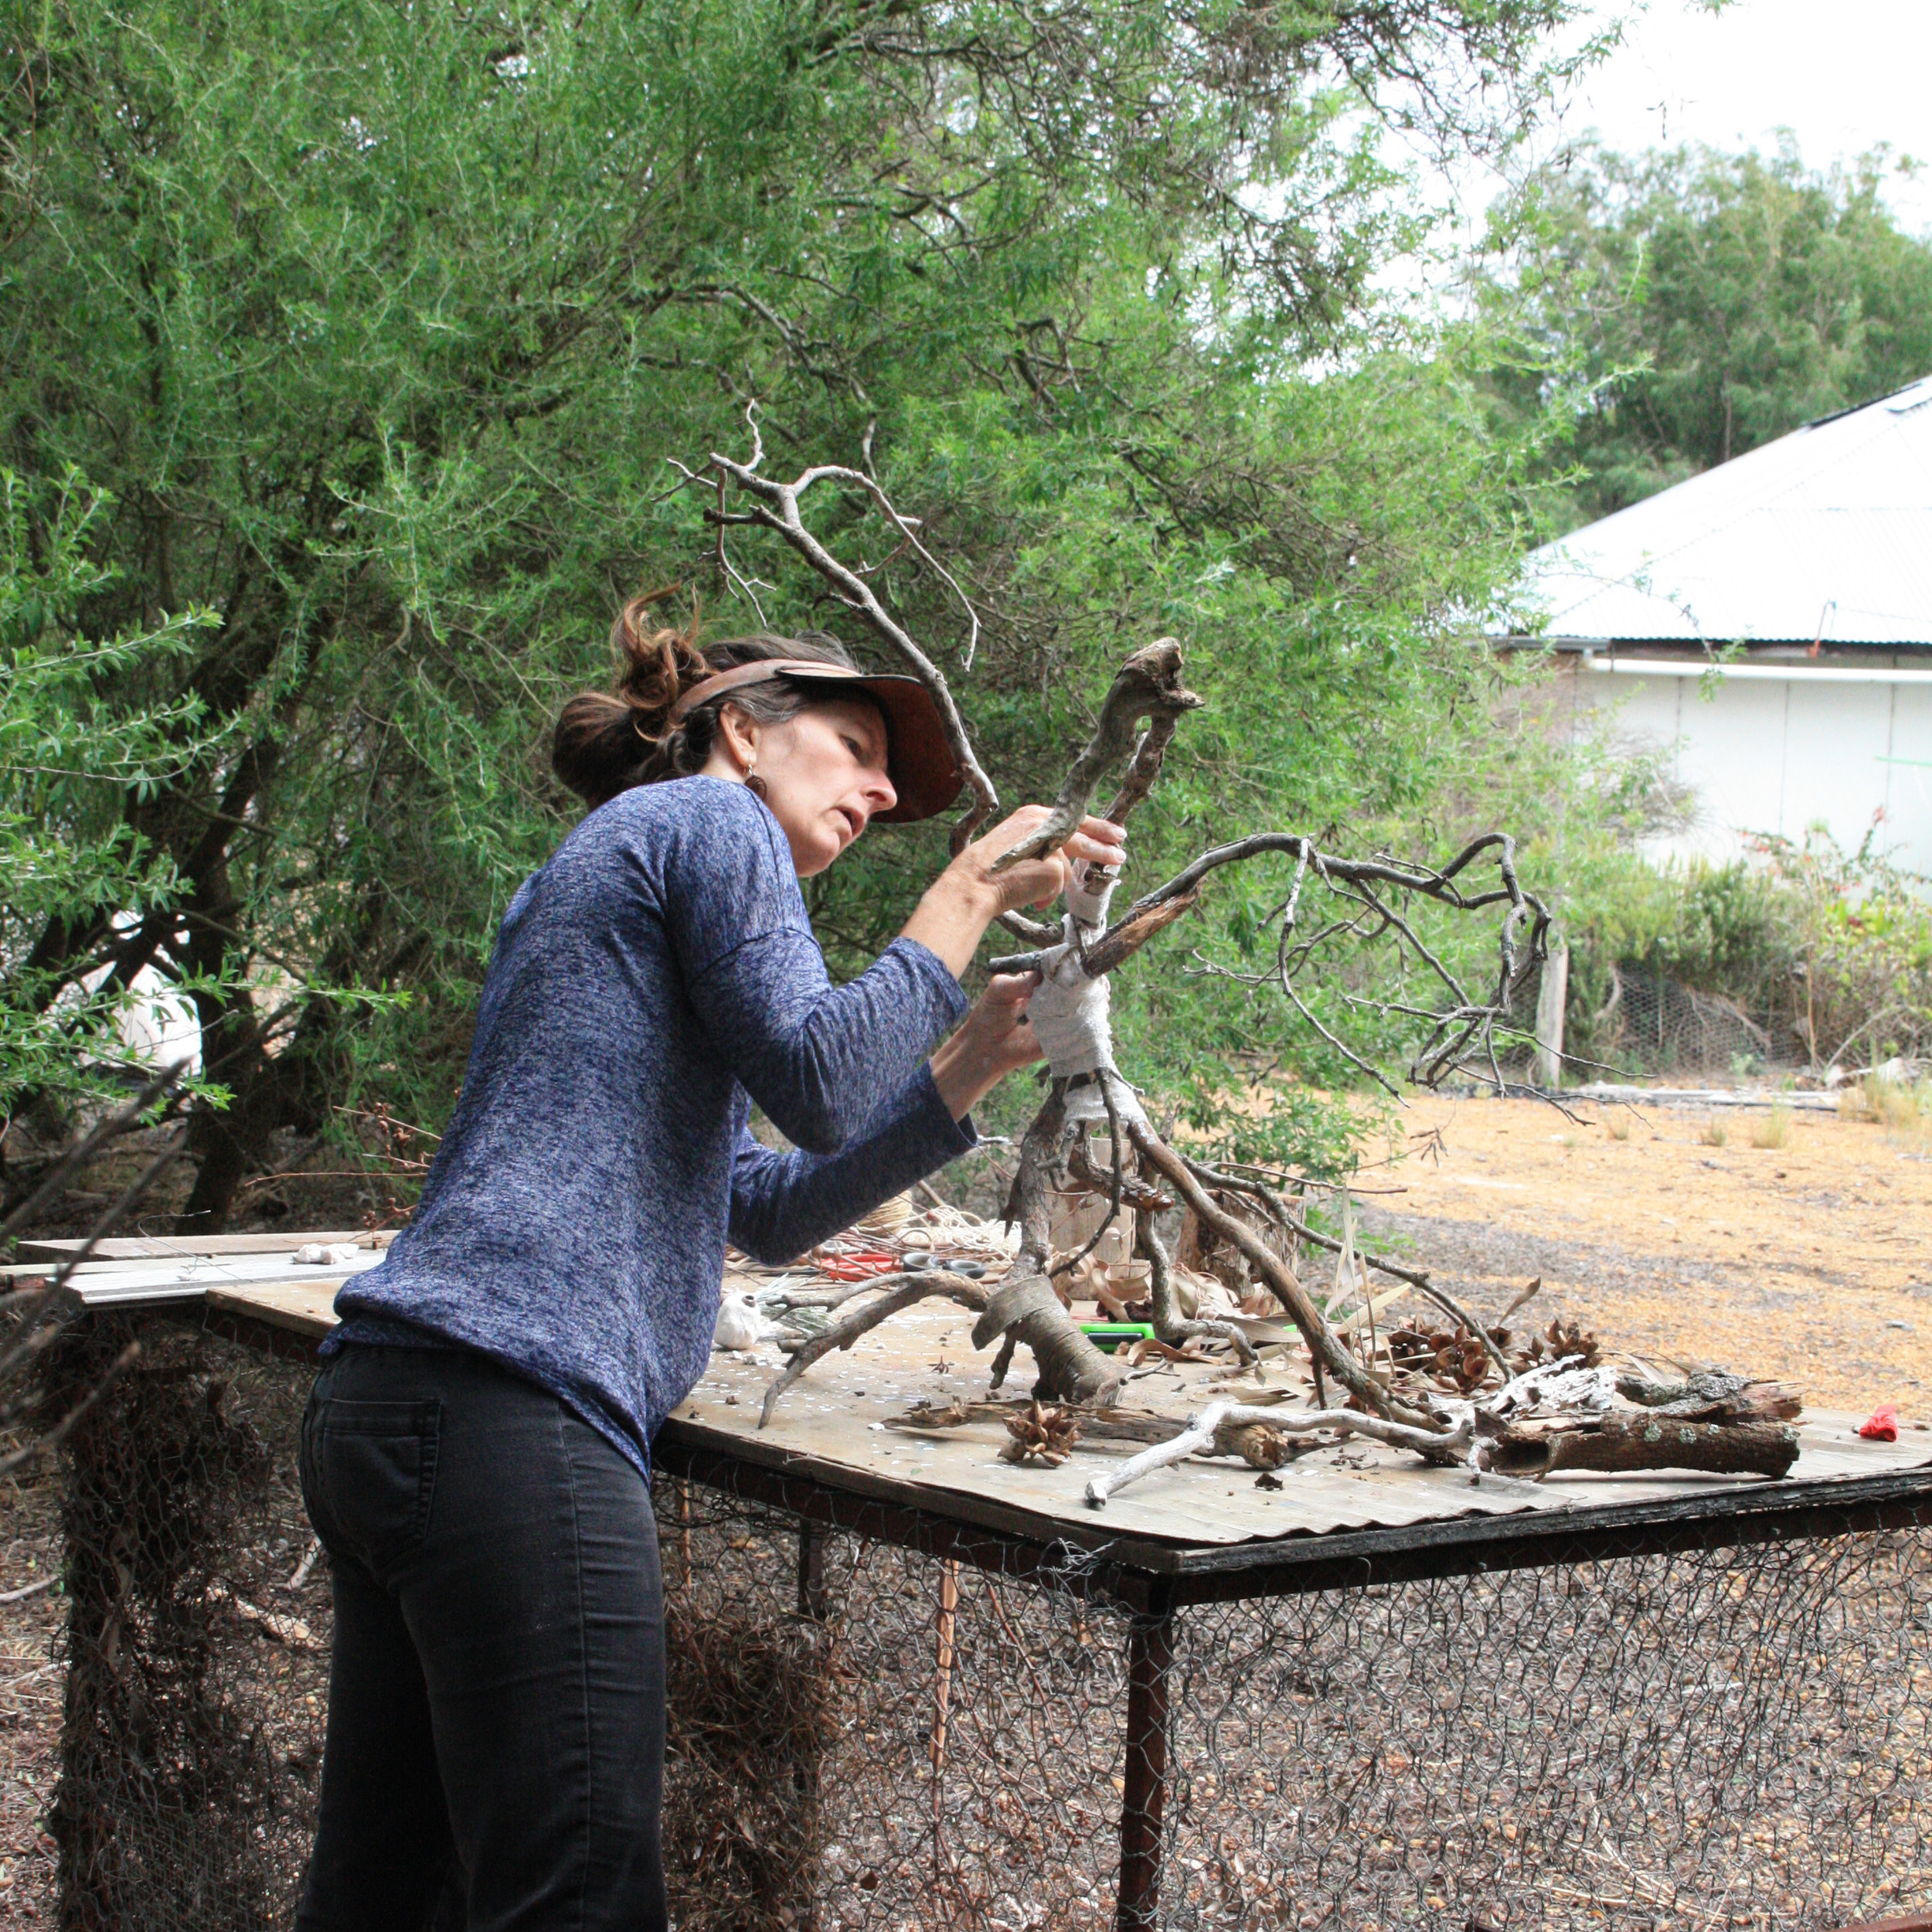 Projects_eco-art retreat 1_Bush creatures with RL 2.jpg